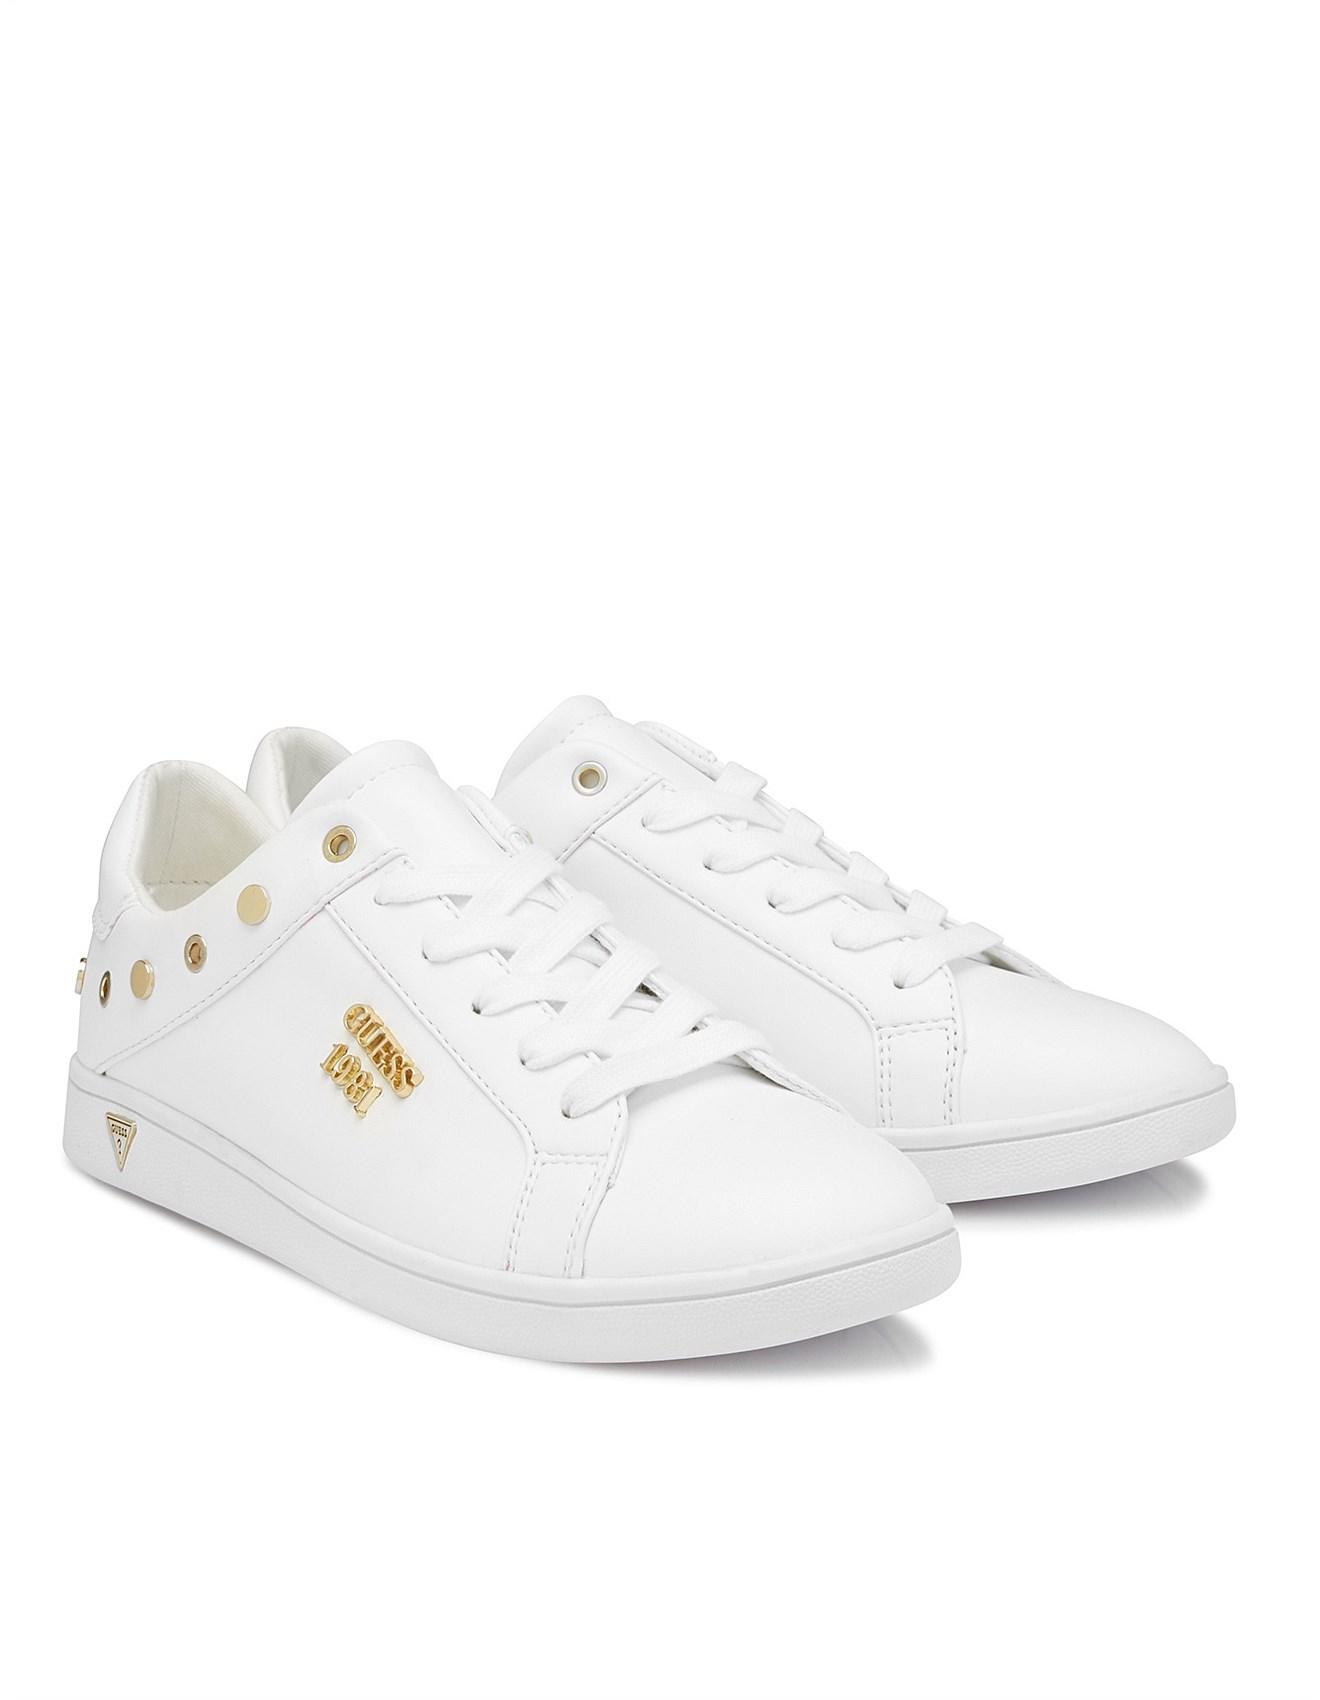 Shoes - Bethh Sneaker